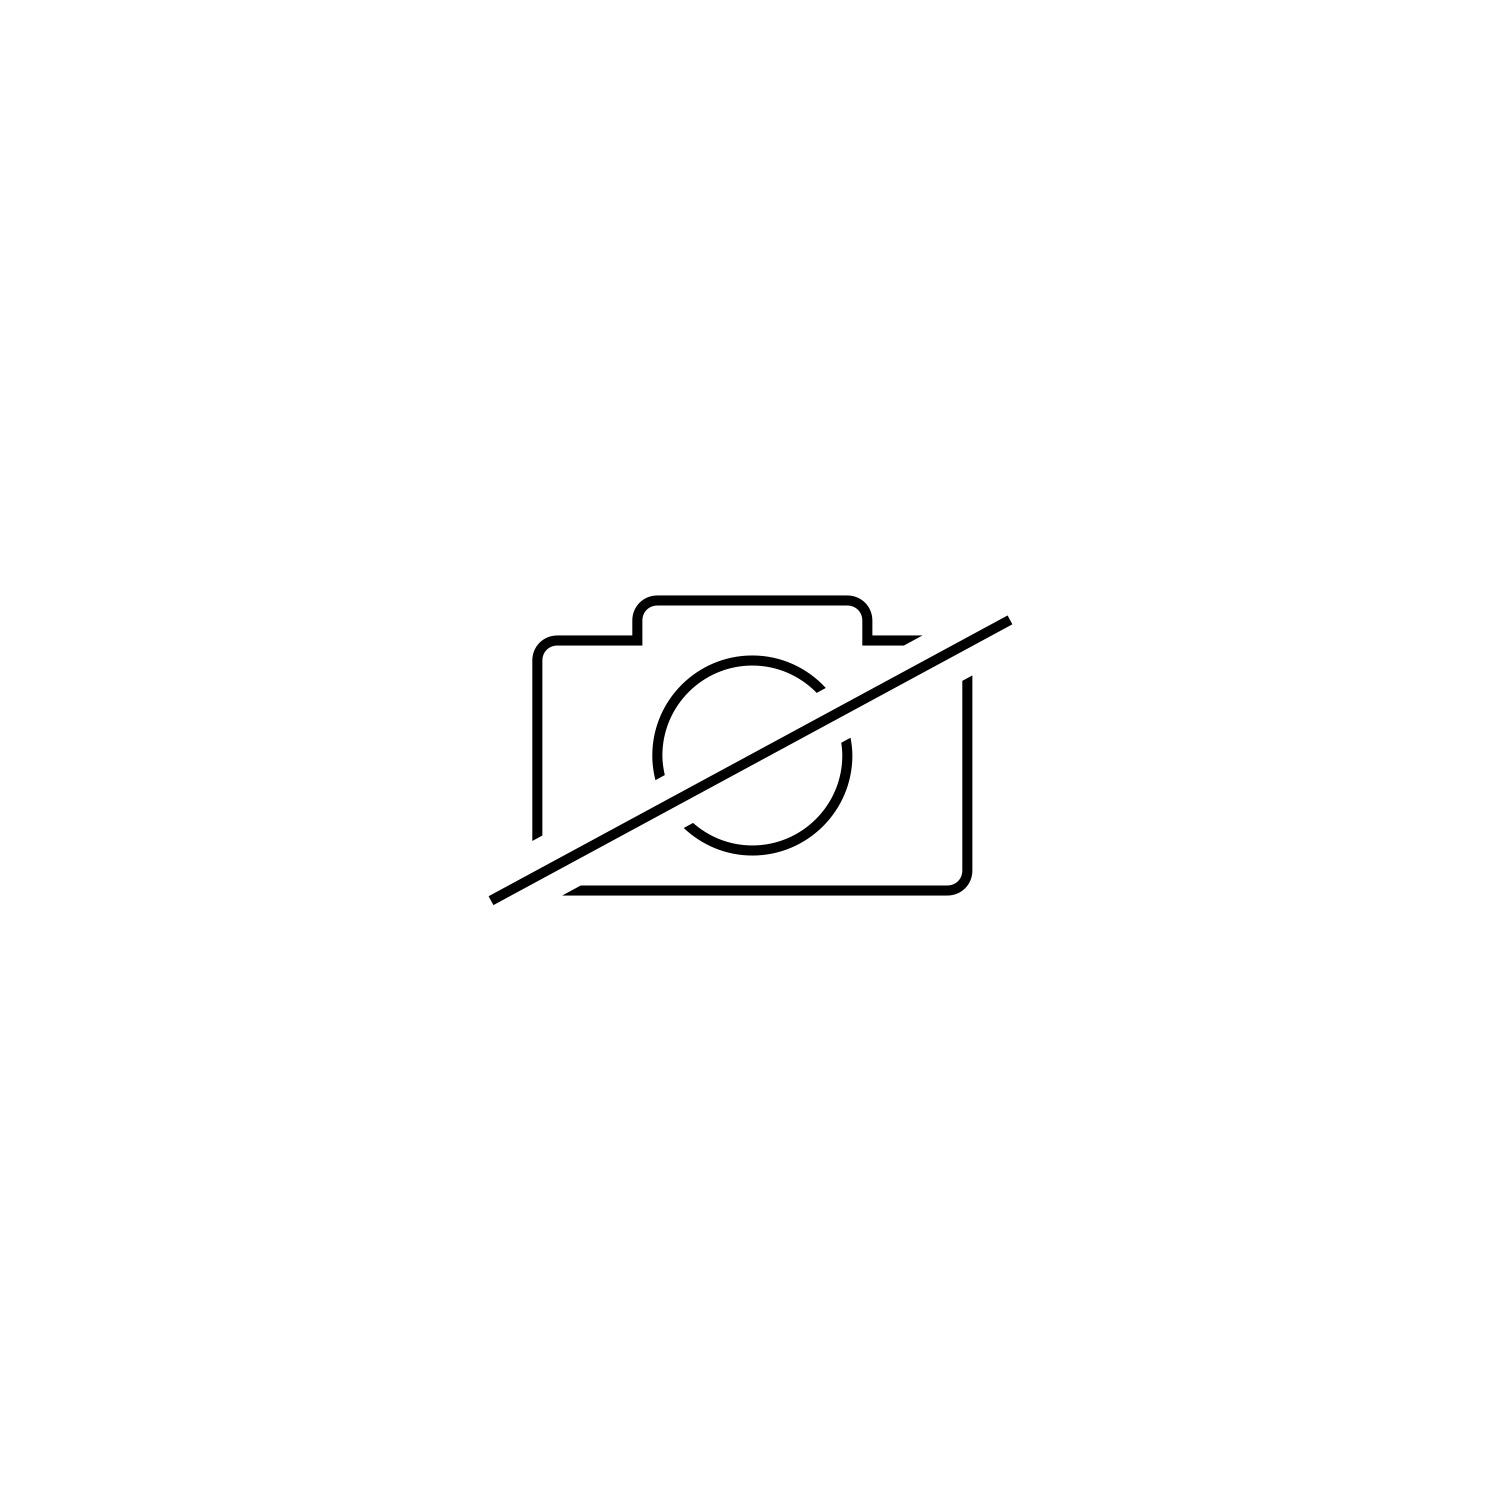 Audi Collection Vorsprung Durch Technik Audi Shopping World